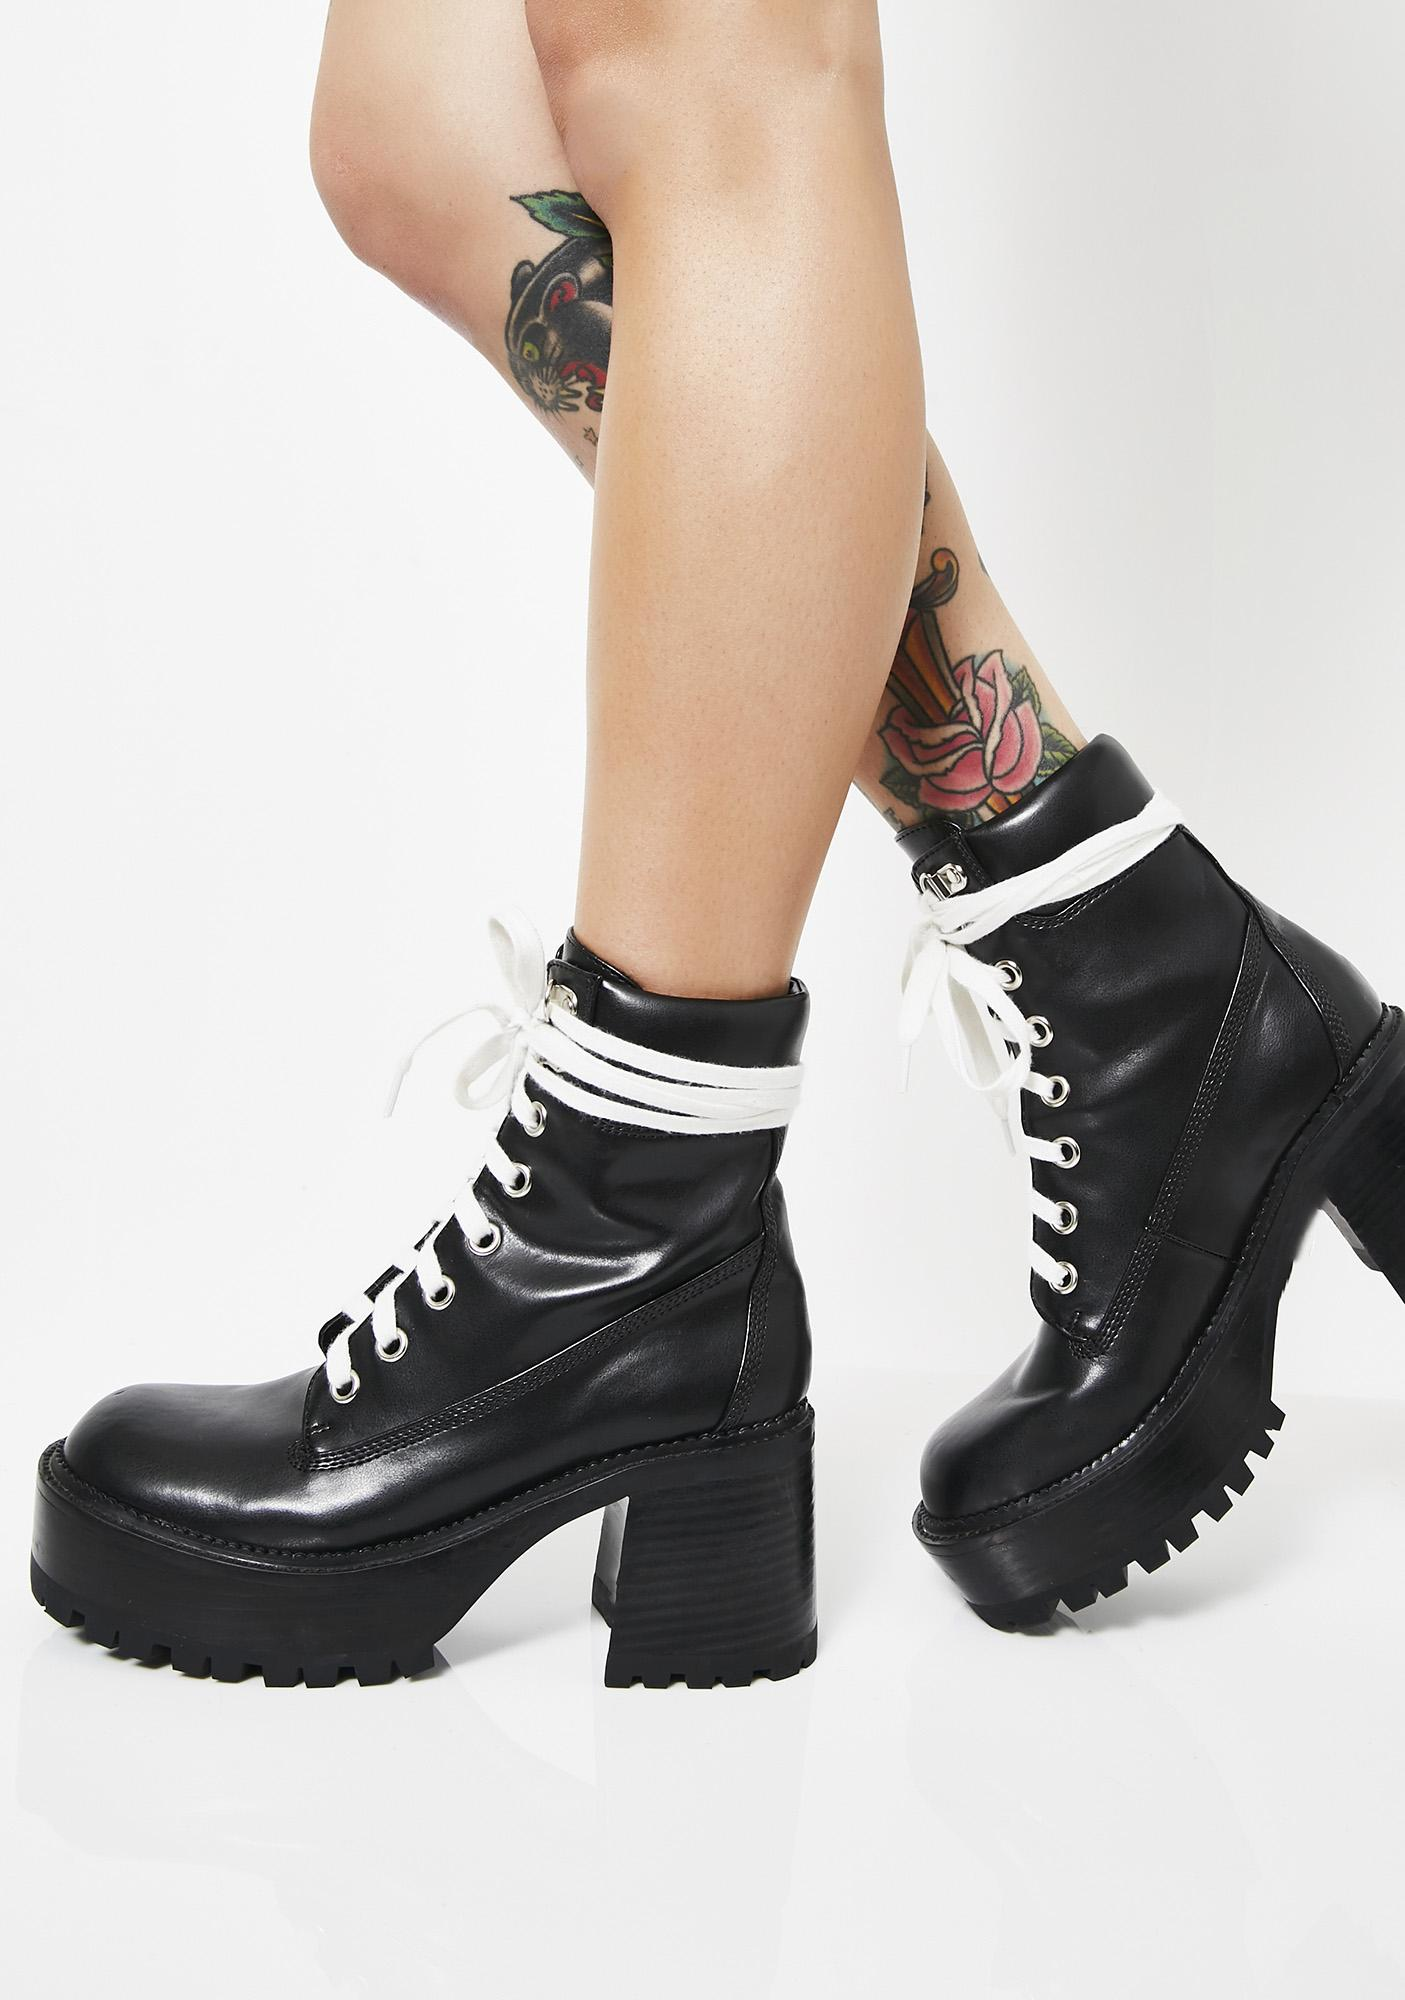 Take A Hike Chunky Boots by Current Mood